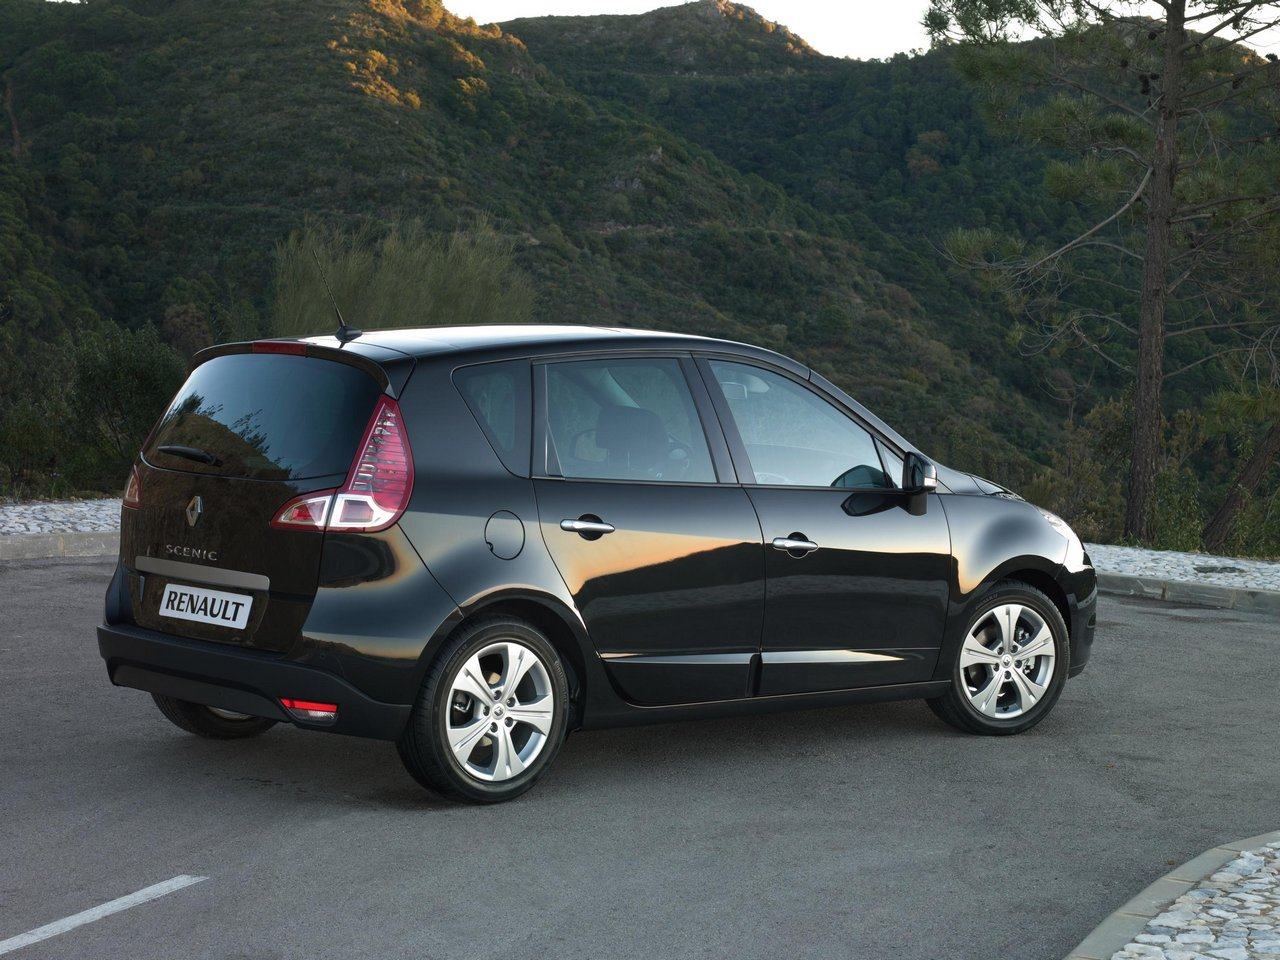 renault scenic tce 130-pic. 2